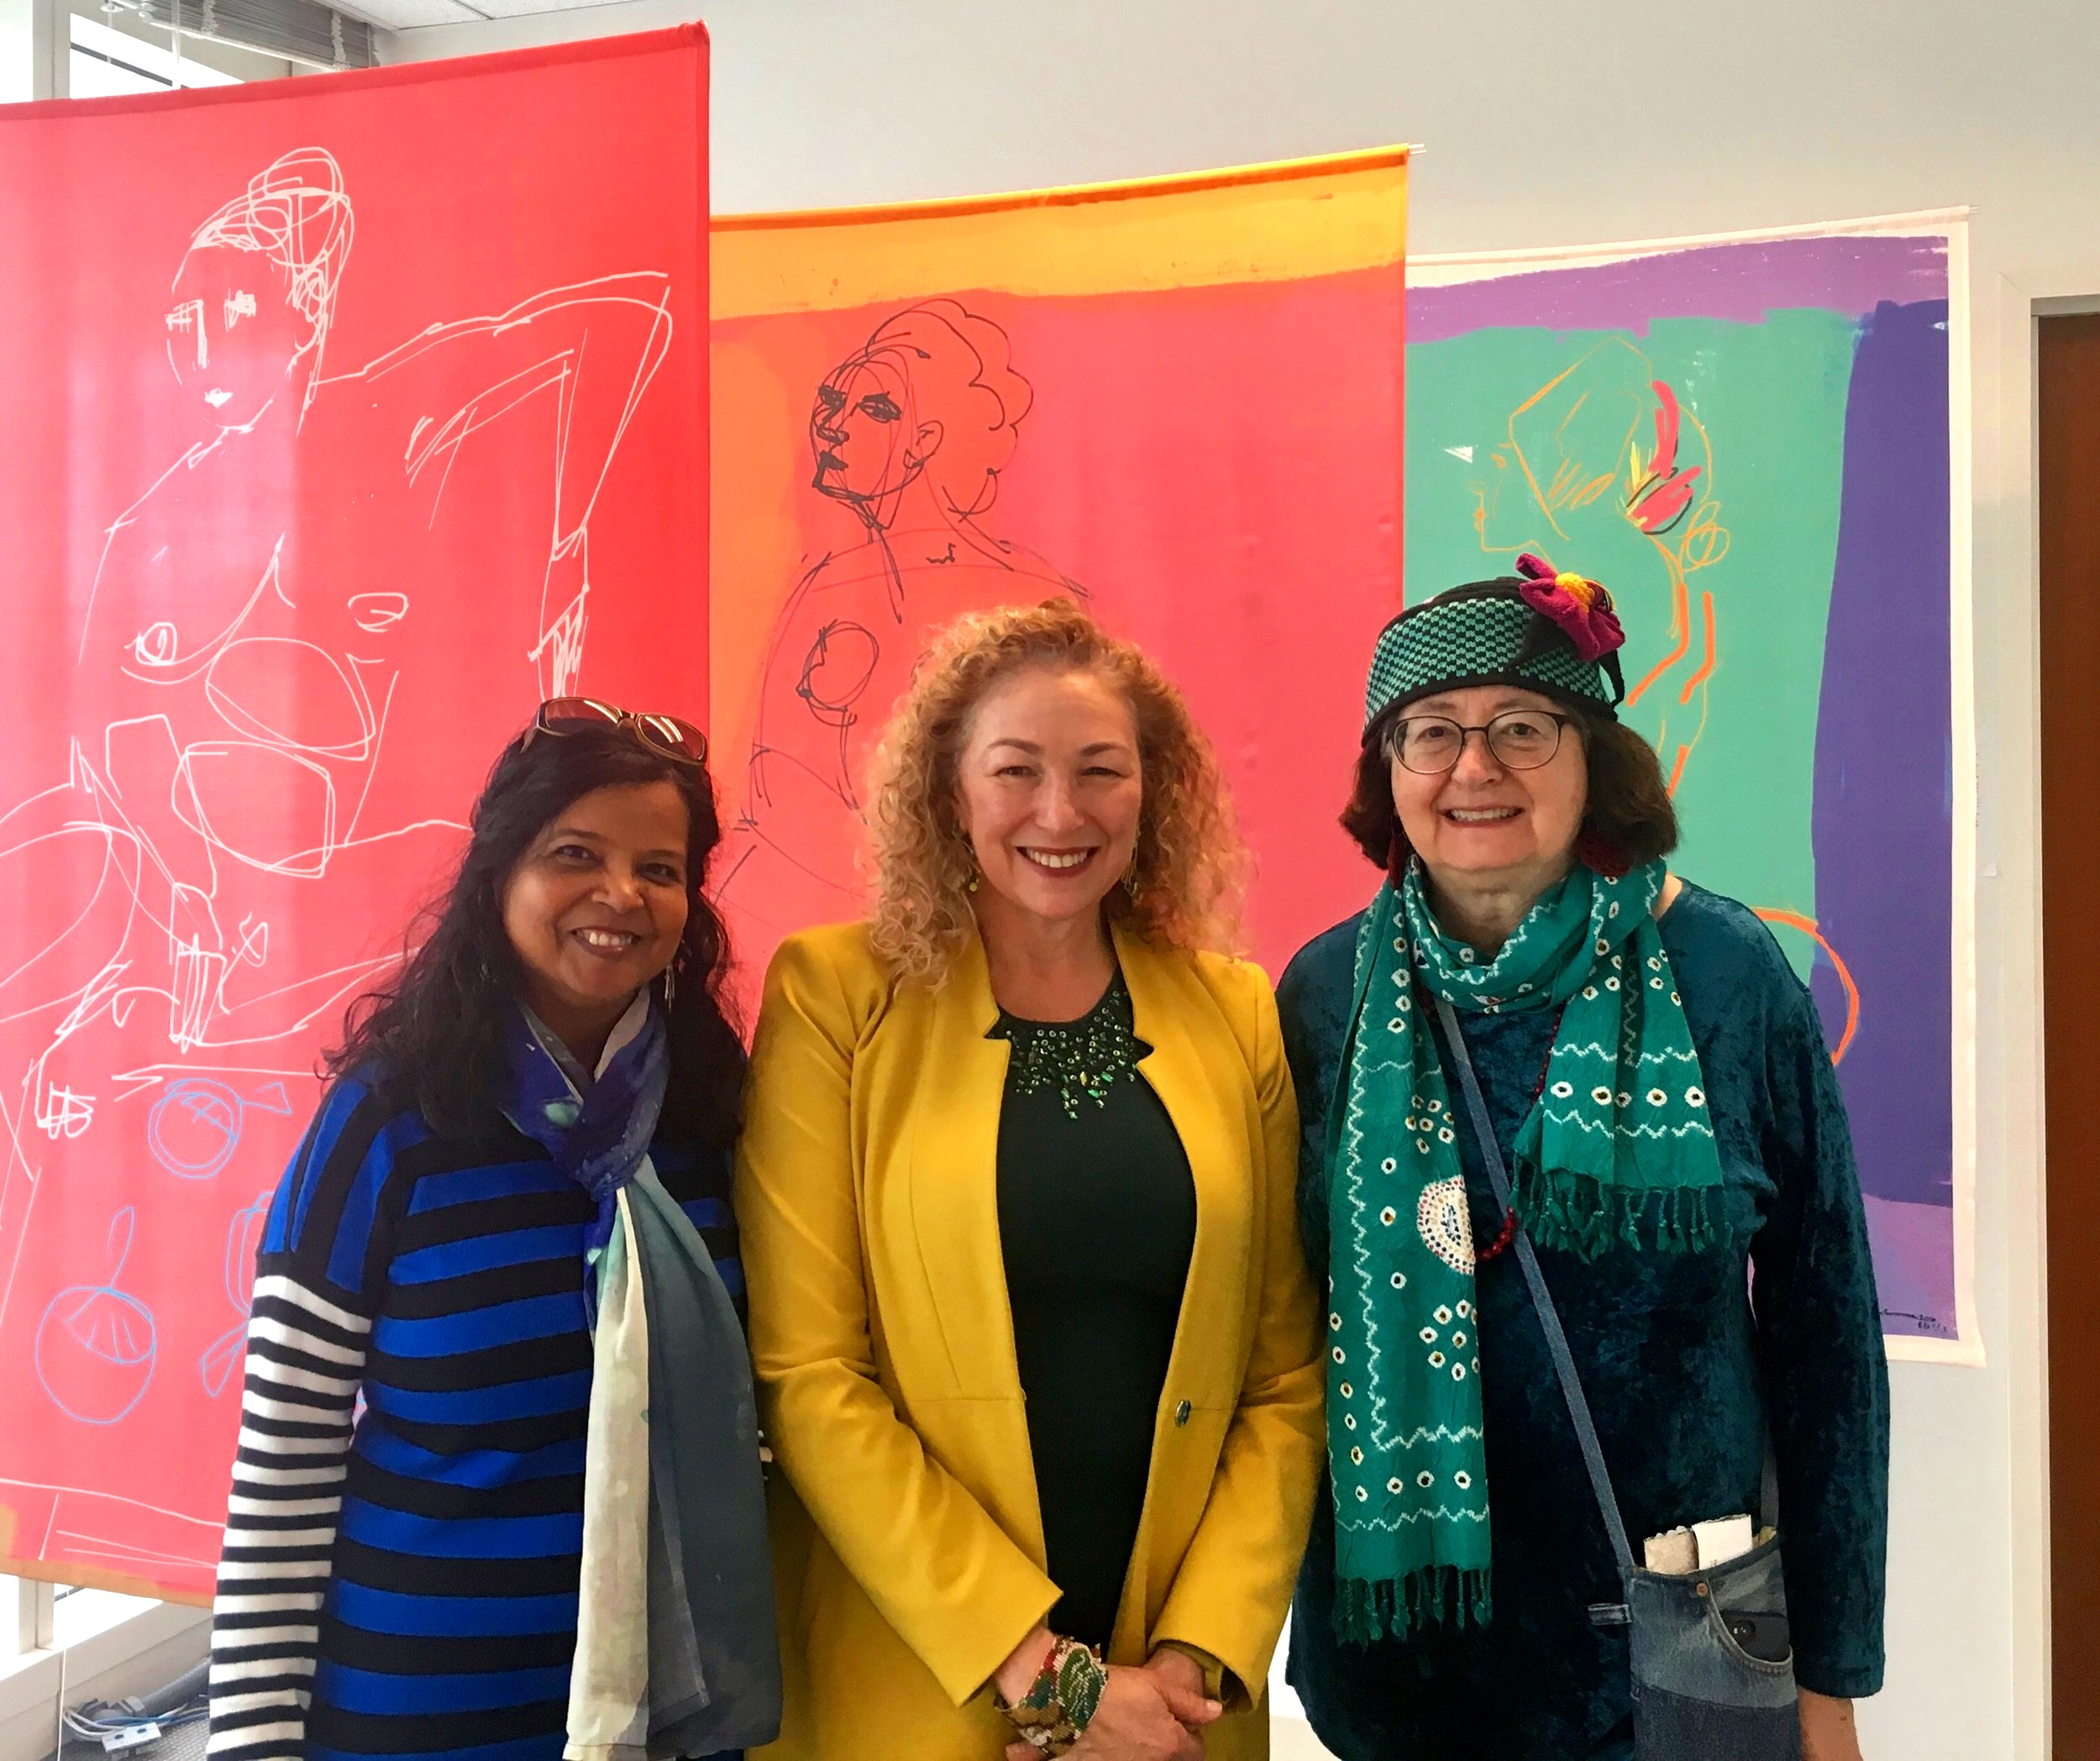 I'm in the center with painter Usha Shukla and textile artist/curator Deborah Corsini. My scrolls are in the background.